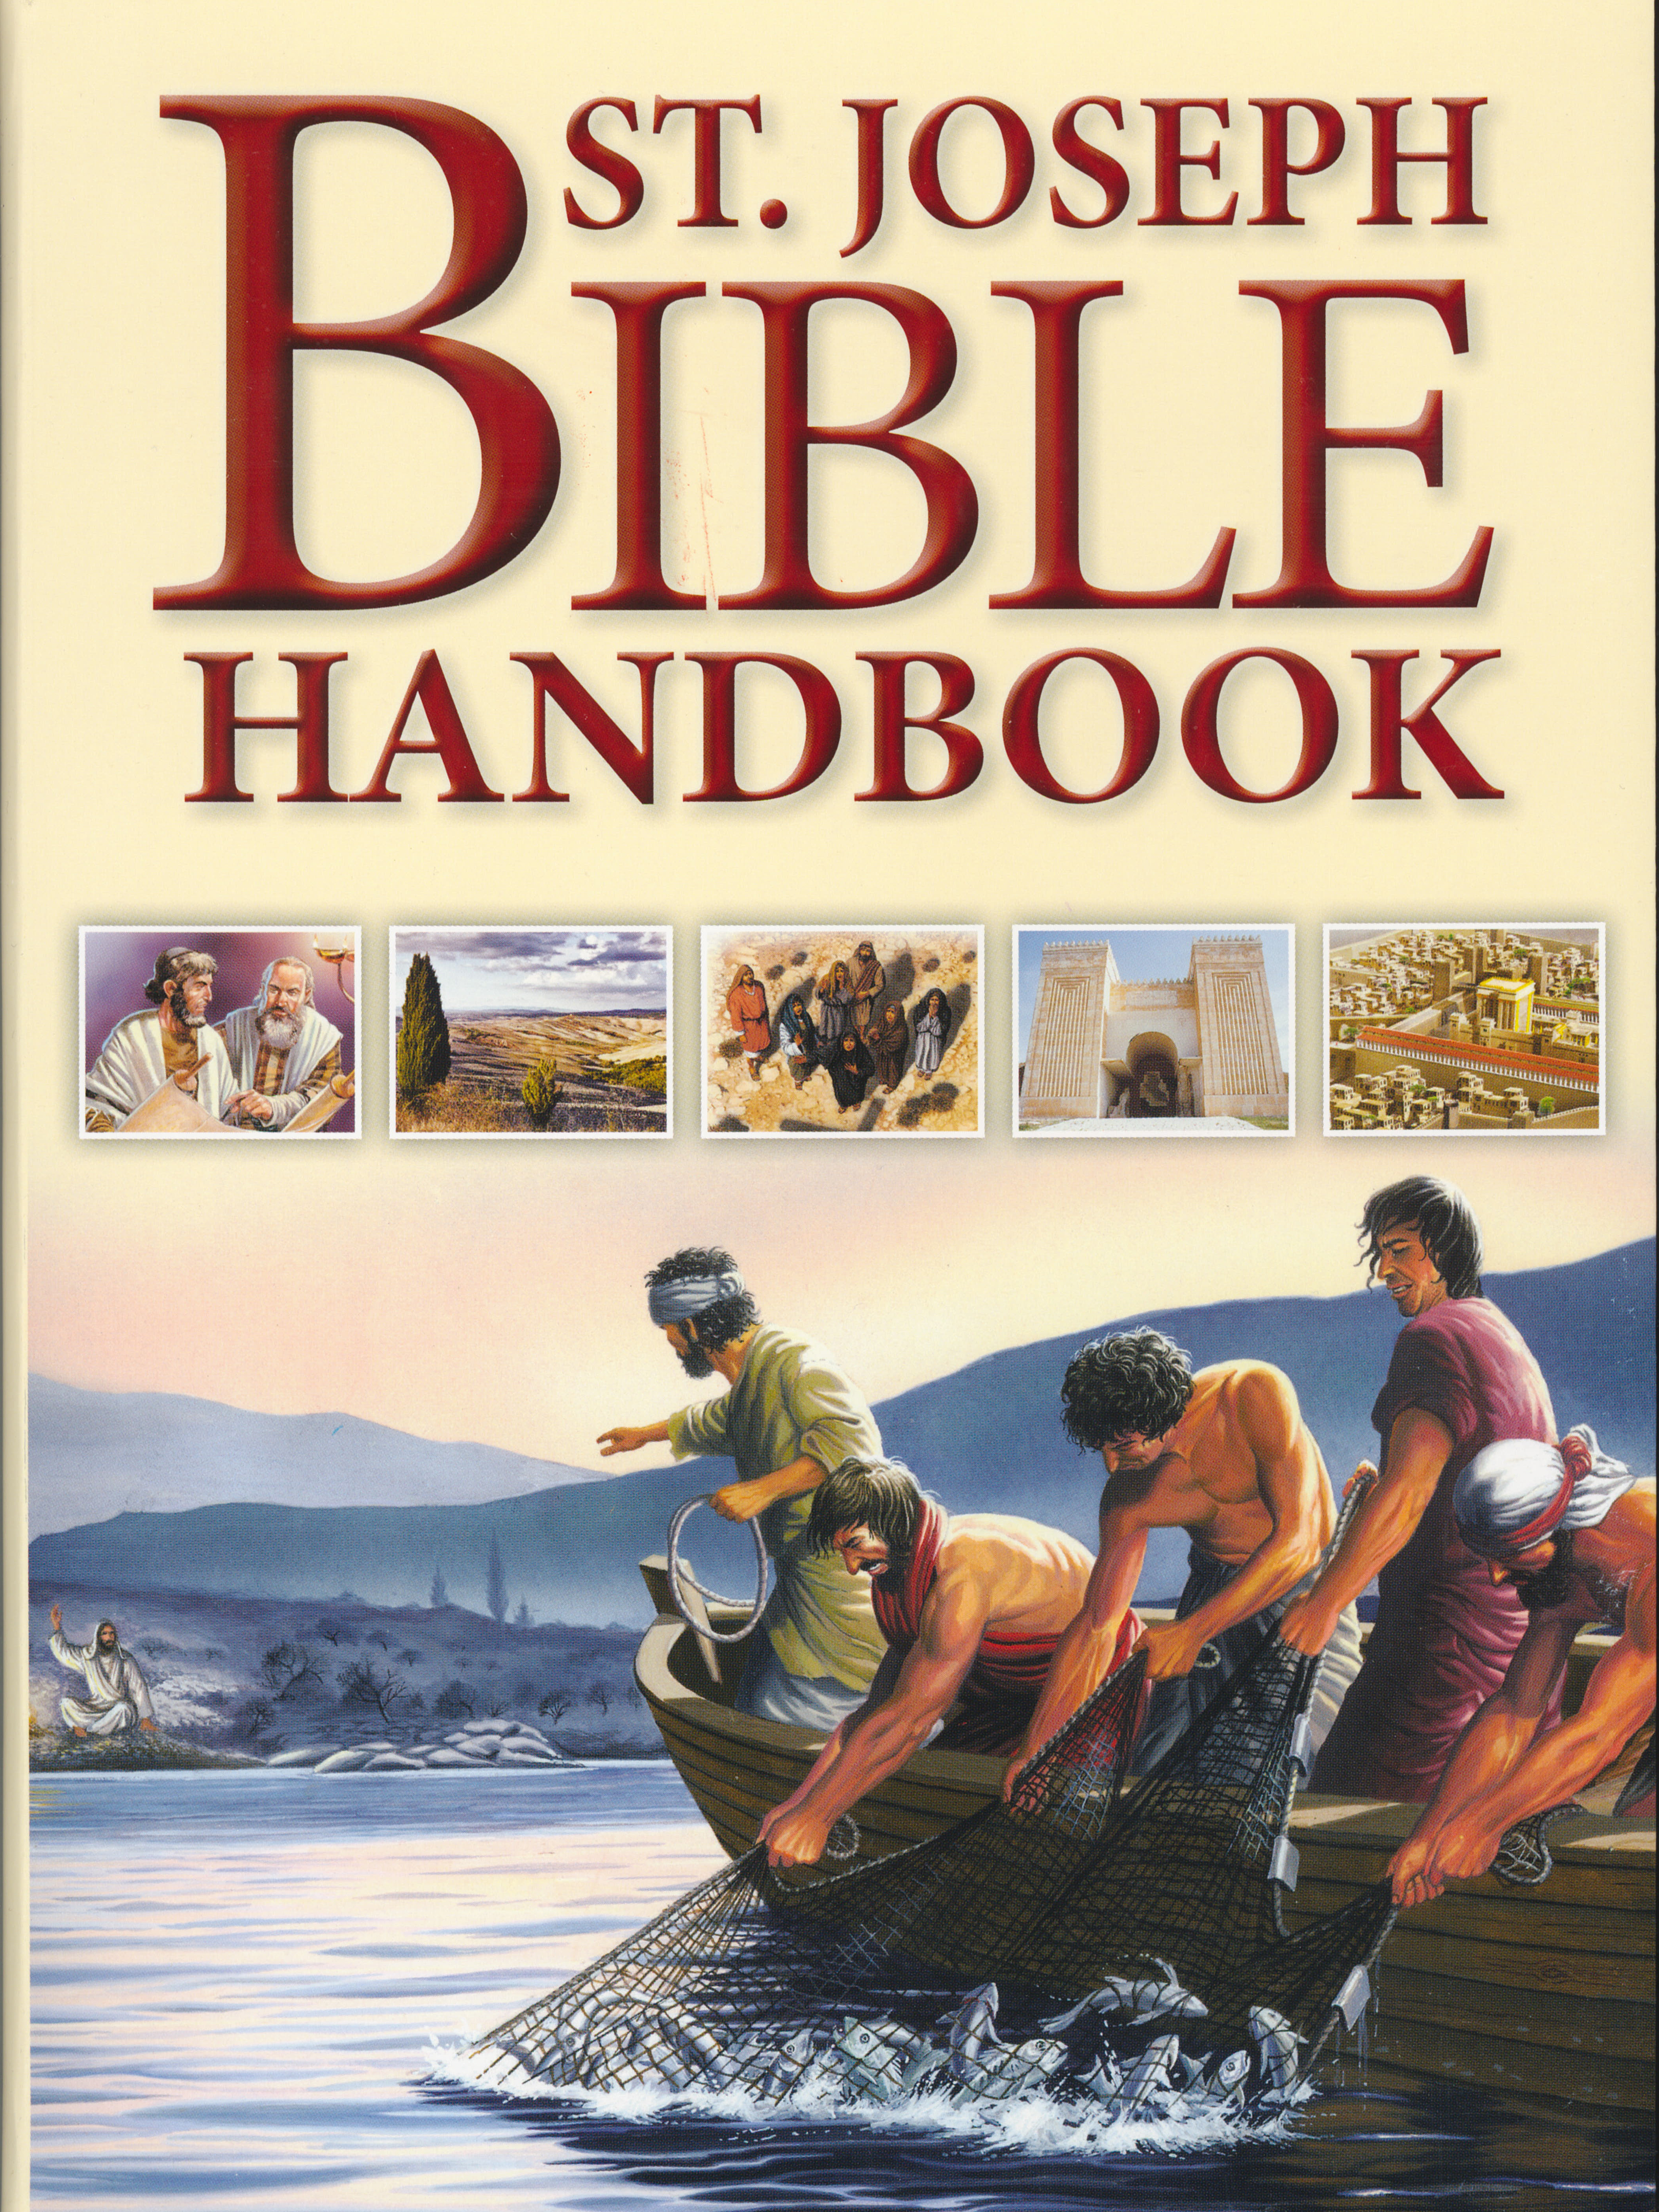 St. Joseph Bible Handbook (649/04) from Catholic Book Publishing 60-9781941243985